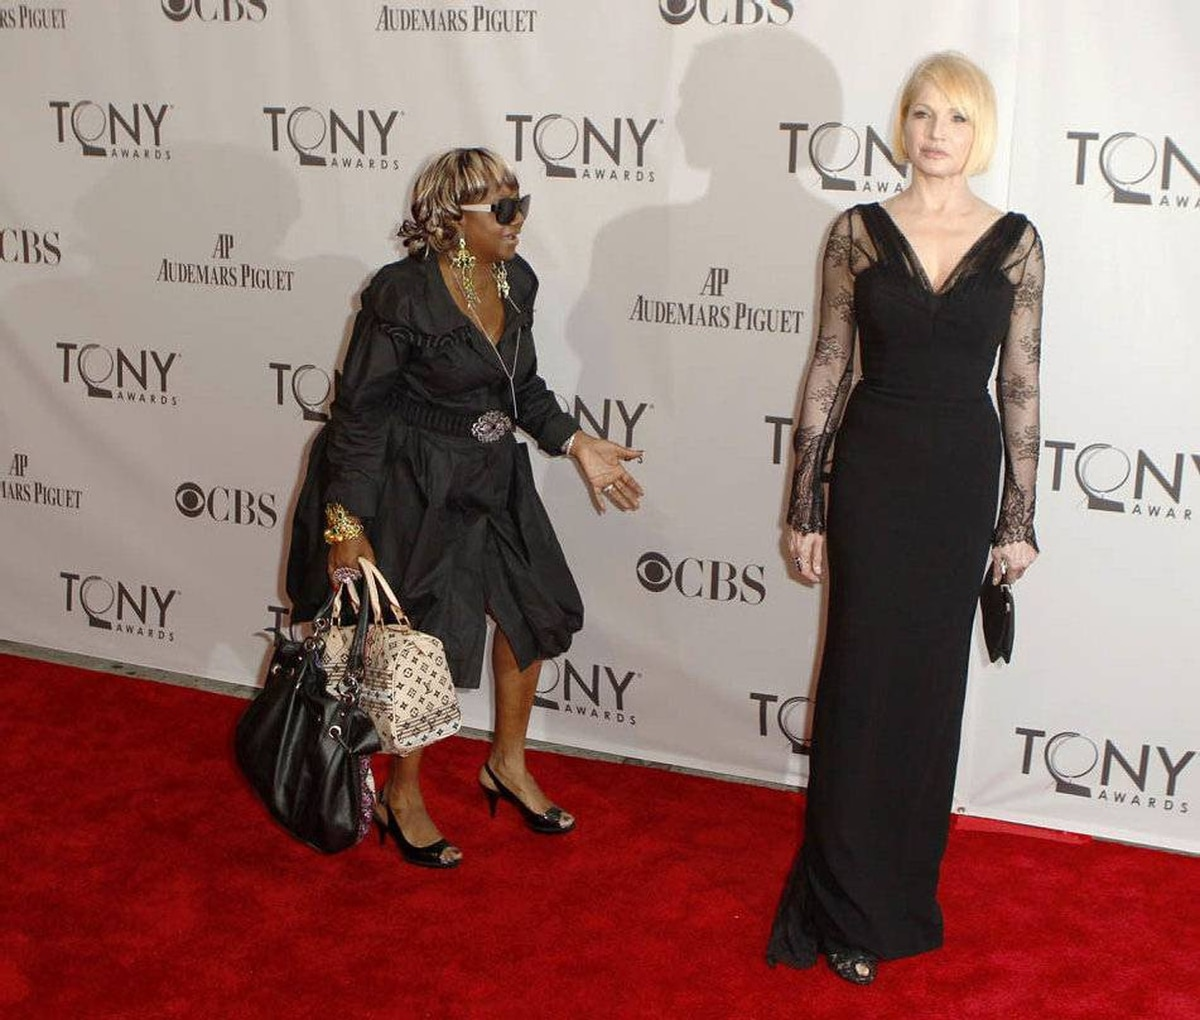 Ellen Barkin, nominated for best performance by an actress in a featured role in a play for The Normal Heart, is followed onto the red carpet by an unidentified woman as she arrives for the American Theatre Wing's 65th annual Tony Awards ceremony in New York, June 12, 2011.